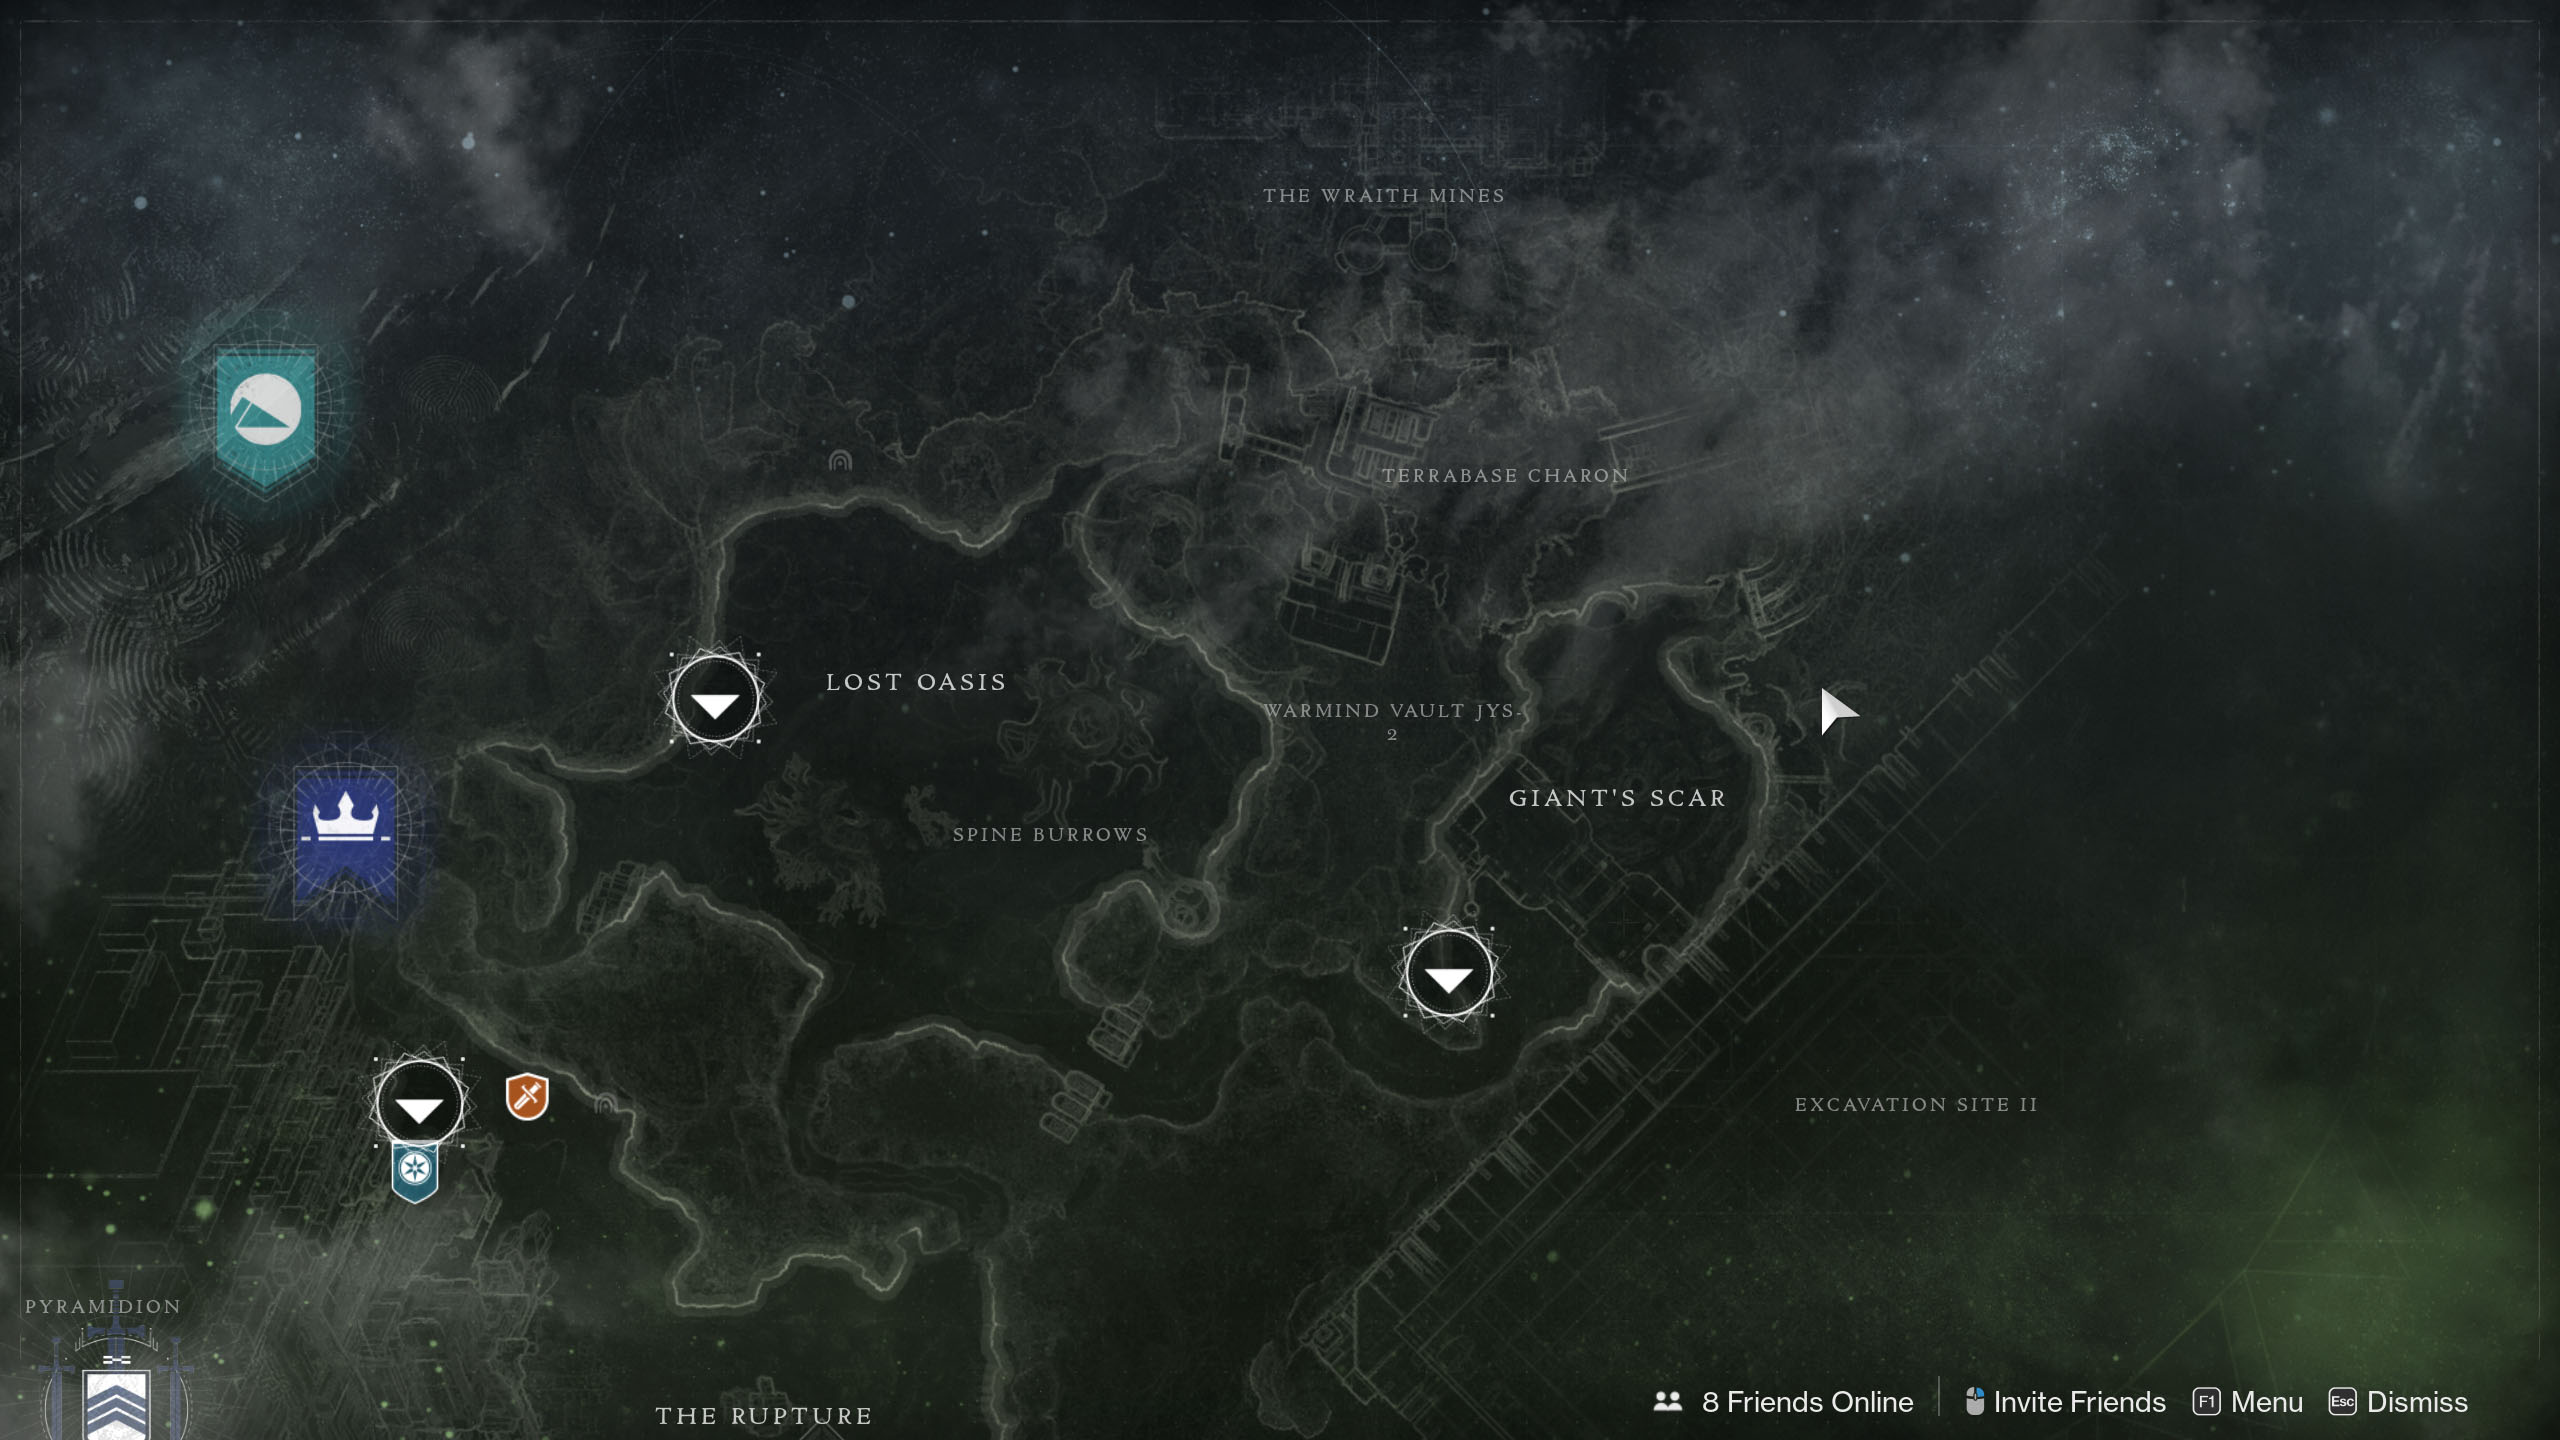 Xur's location for June 19, 2020